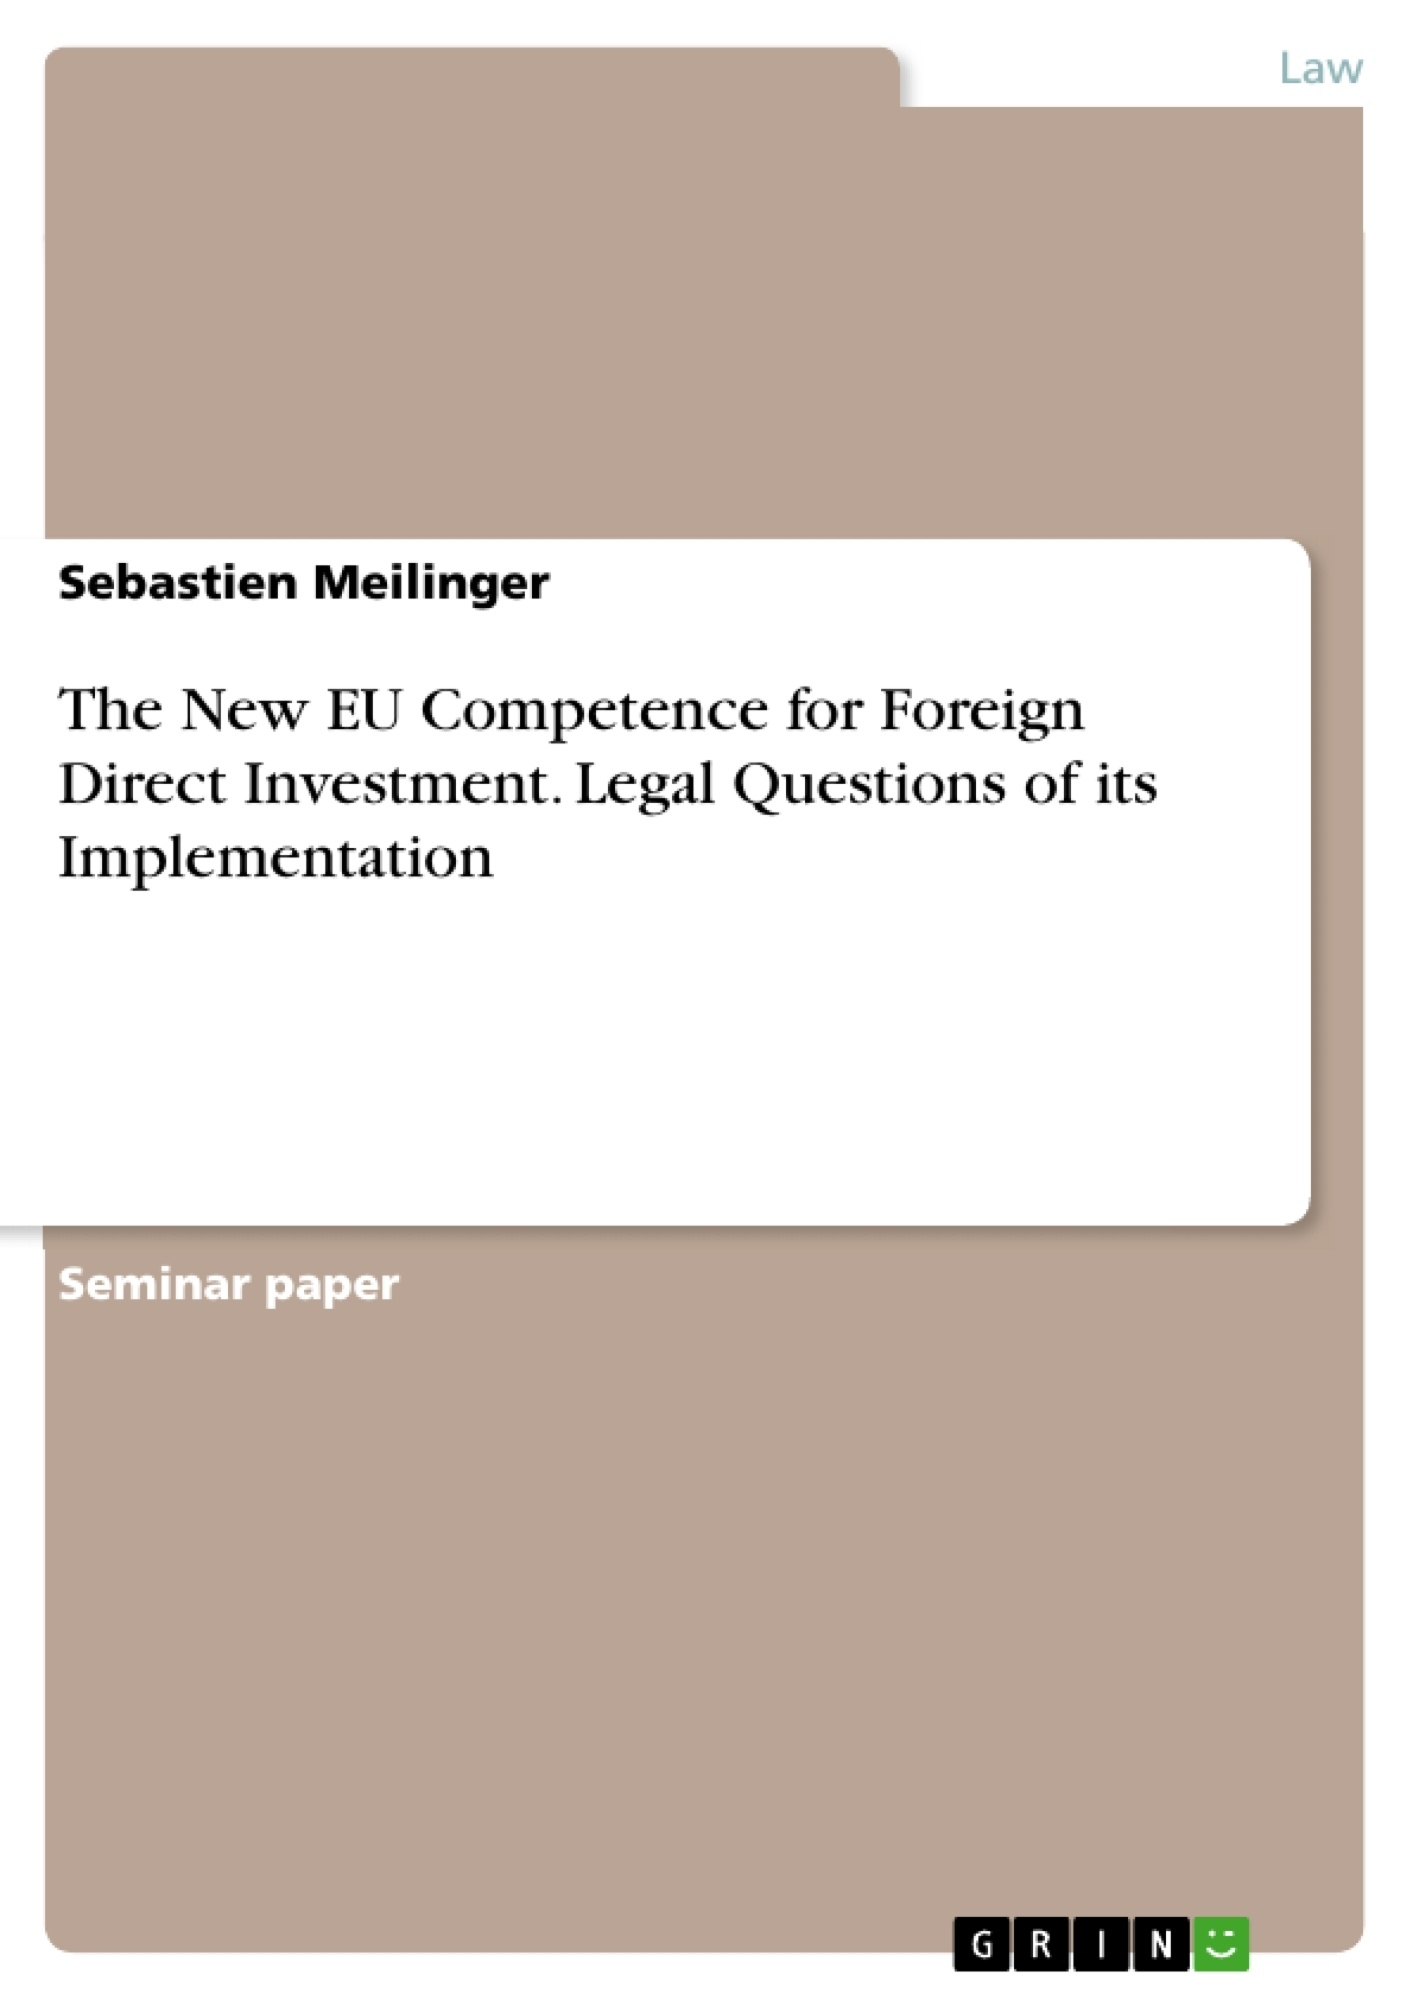 Title: The New EU Competence for Foreign Direct Investment. Legal Questions of its Implementation